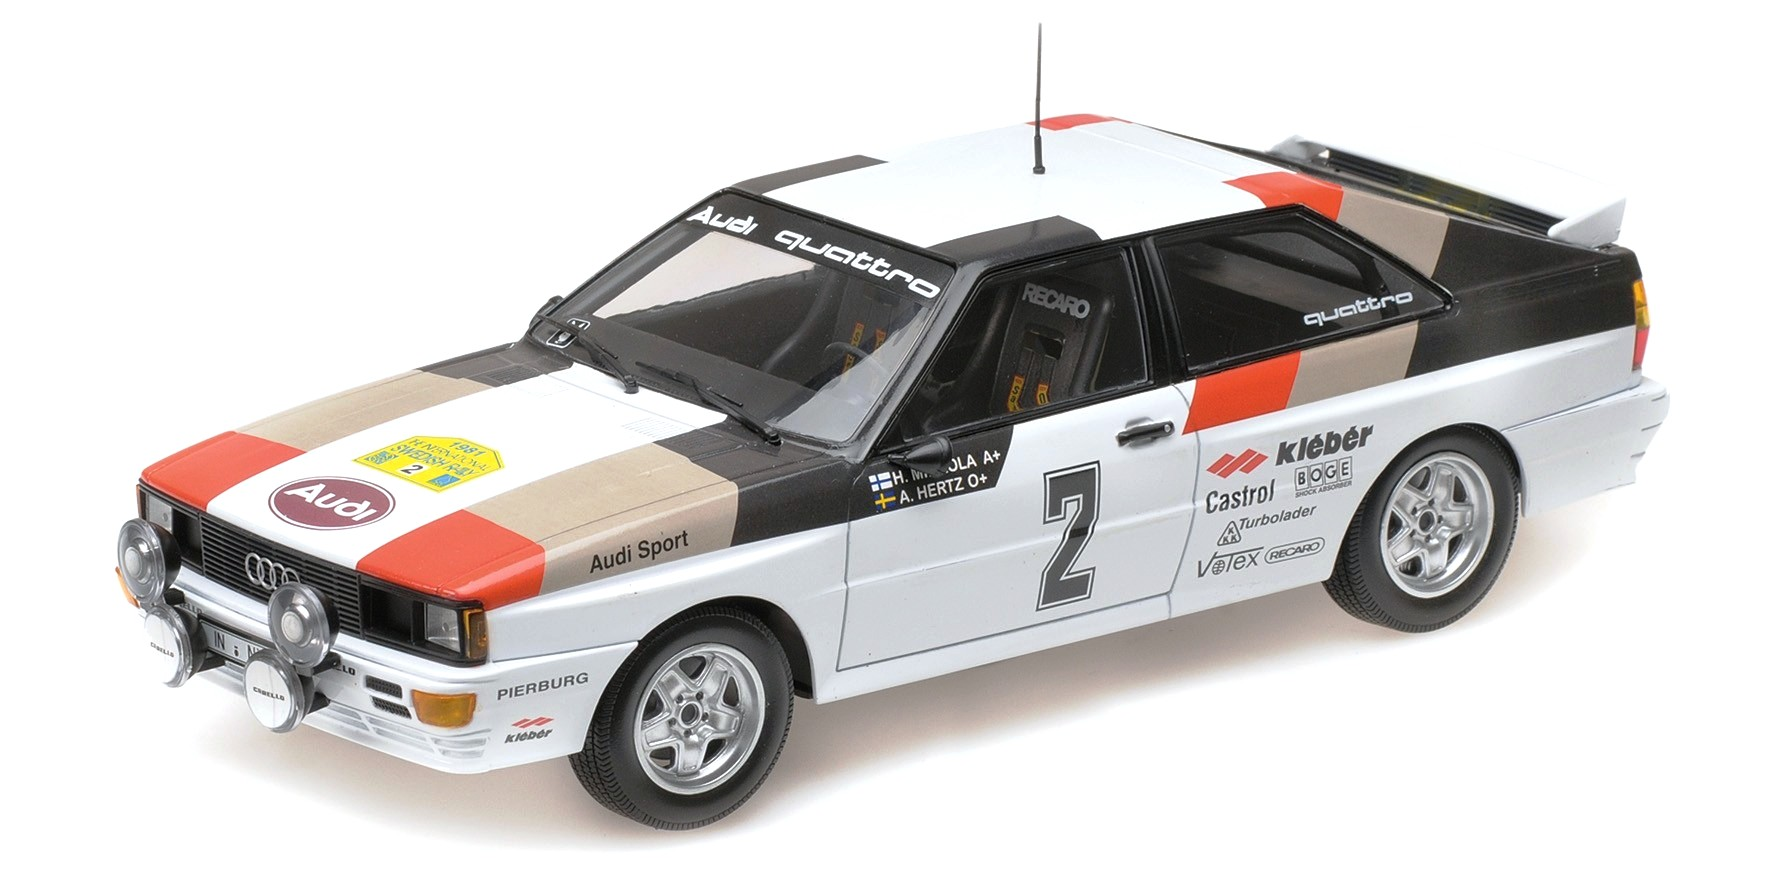 Audi Quattro Audi Sport Winner International Swedish Rally 81 1:18 Minichamps